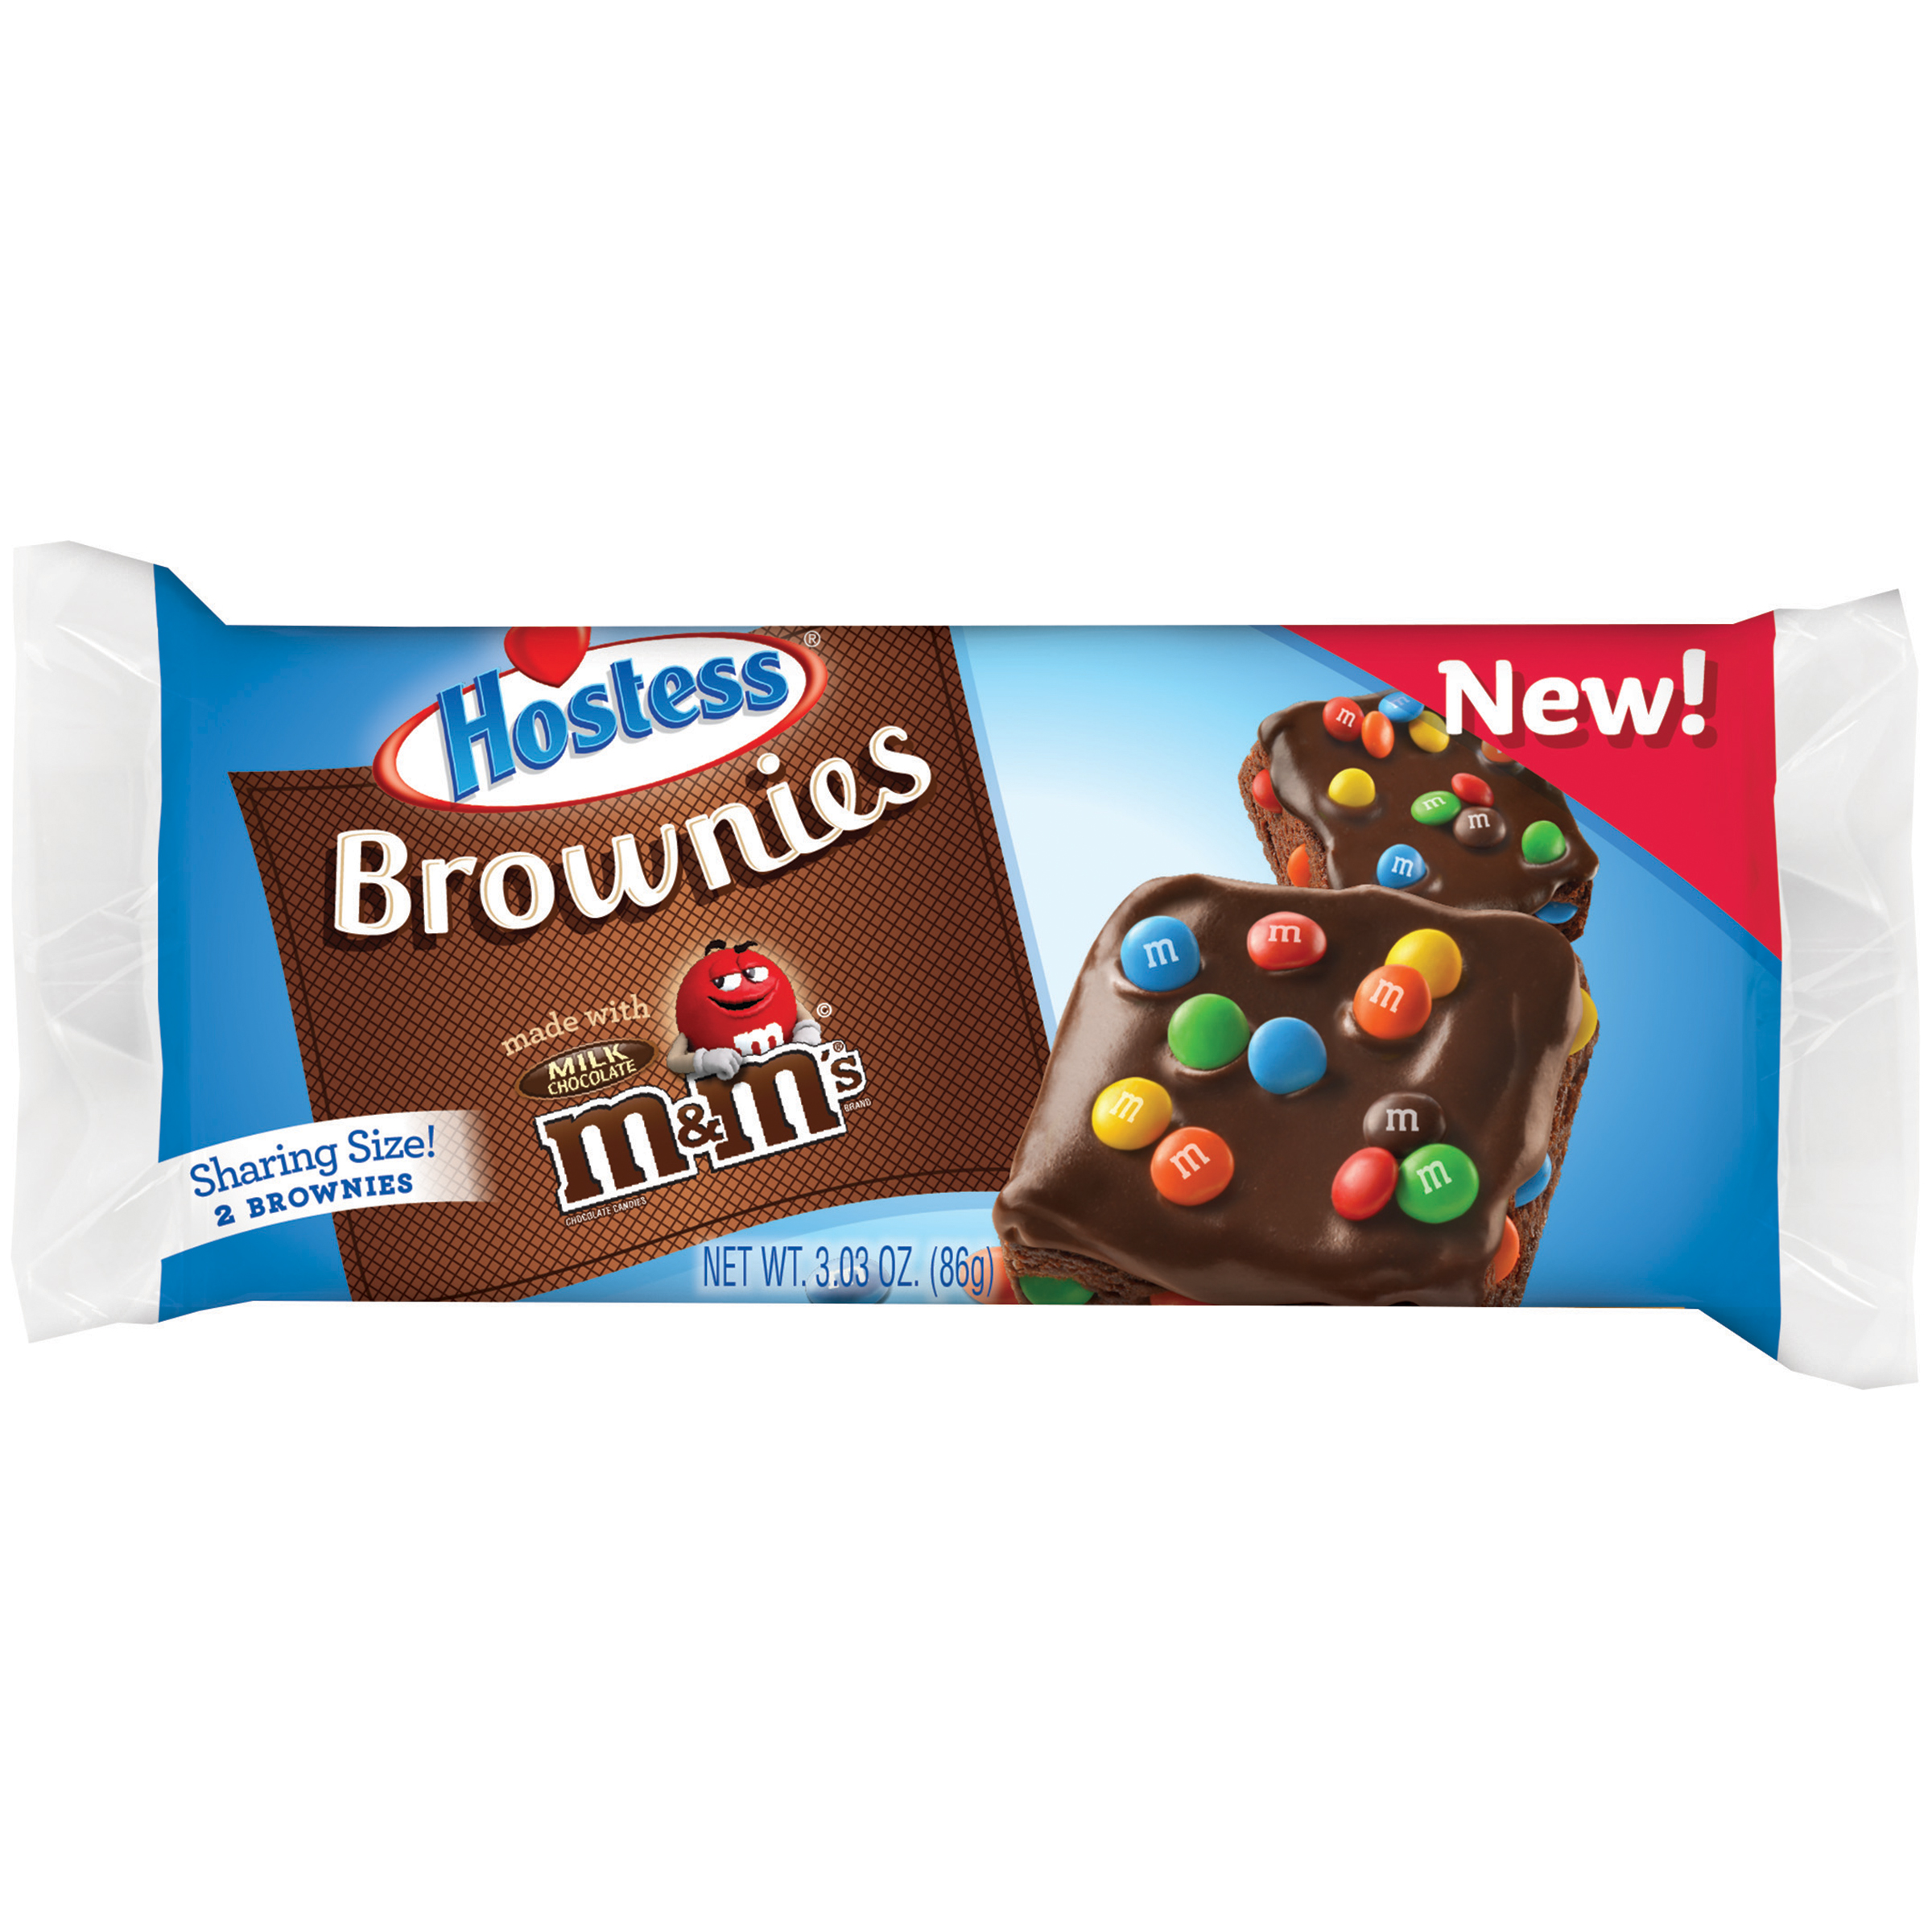 Hostess Brownies Made with Milk Chocolate M&M's, 3.03 oz